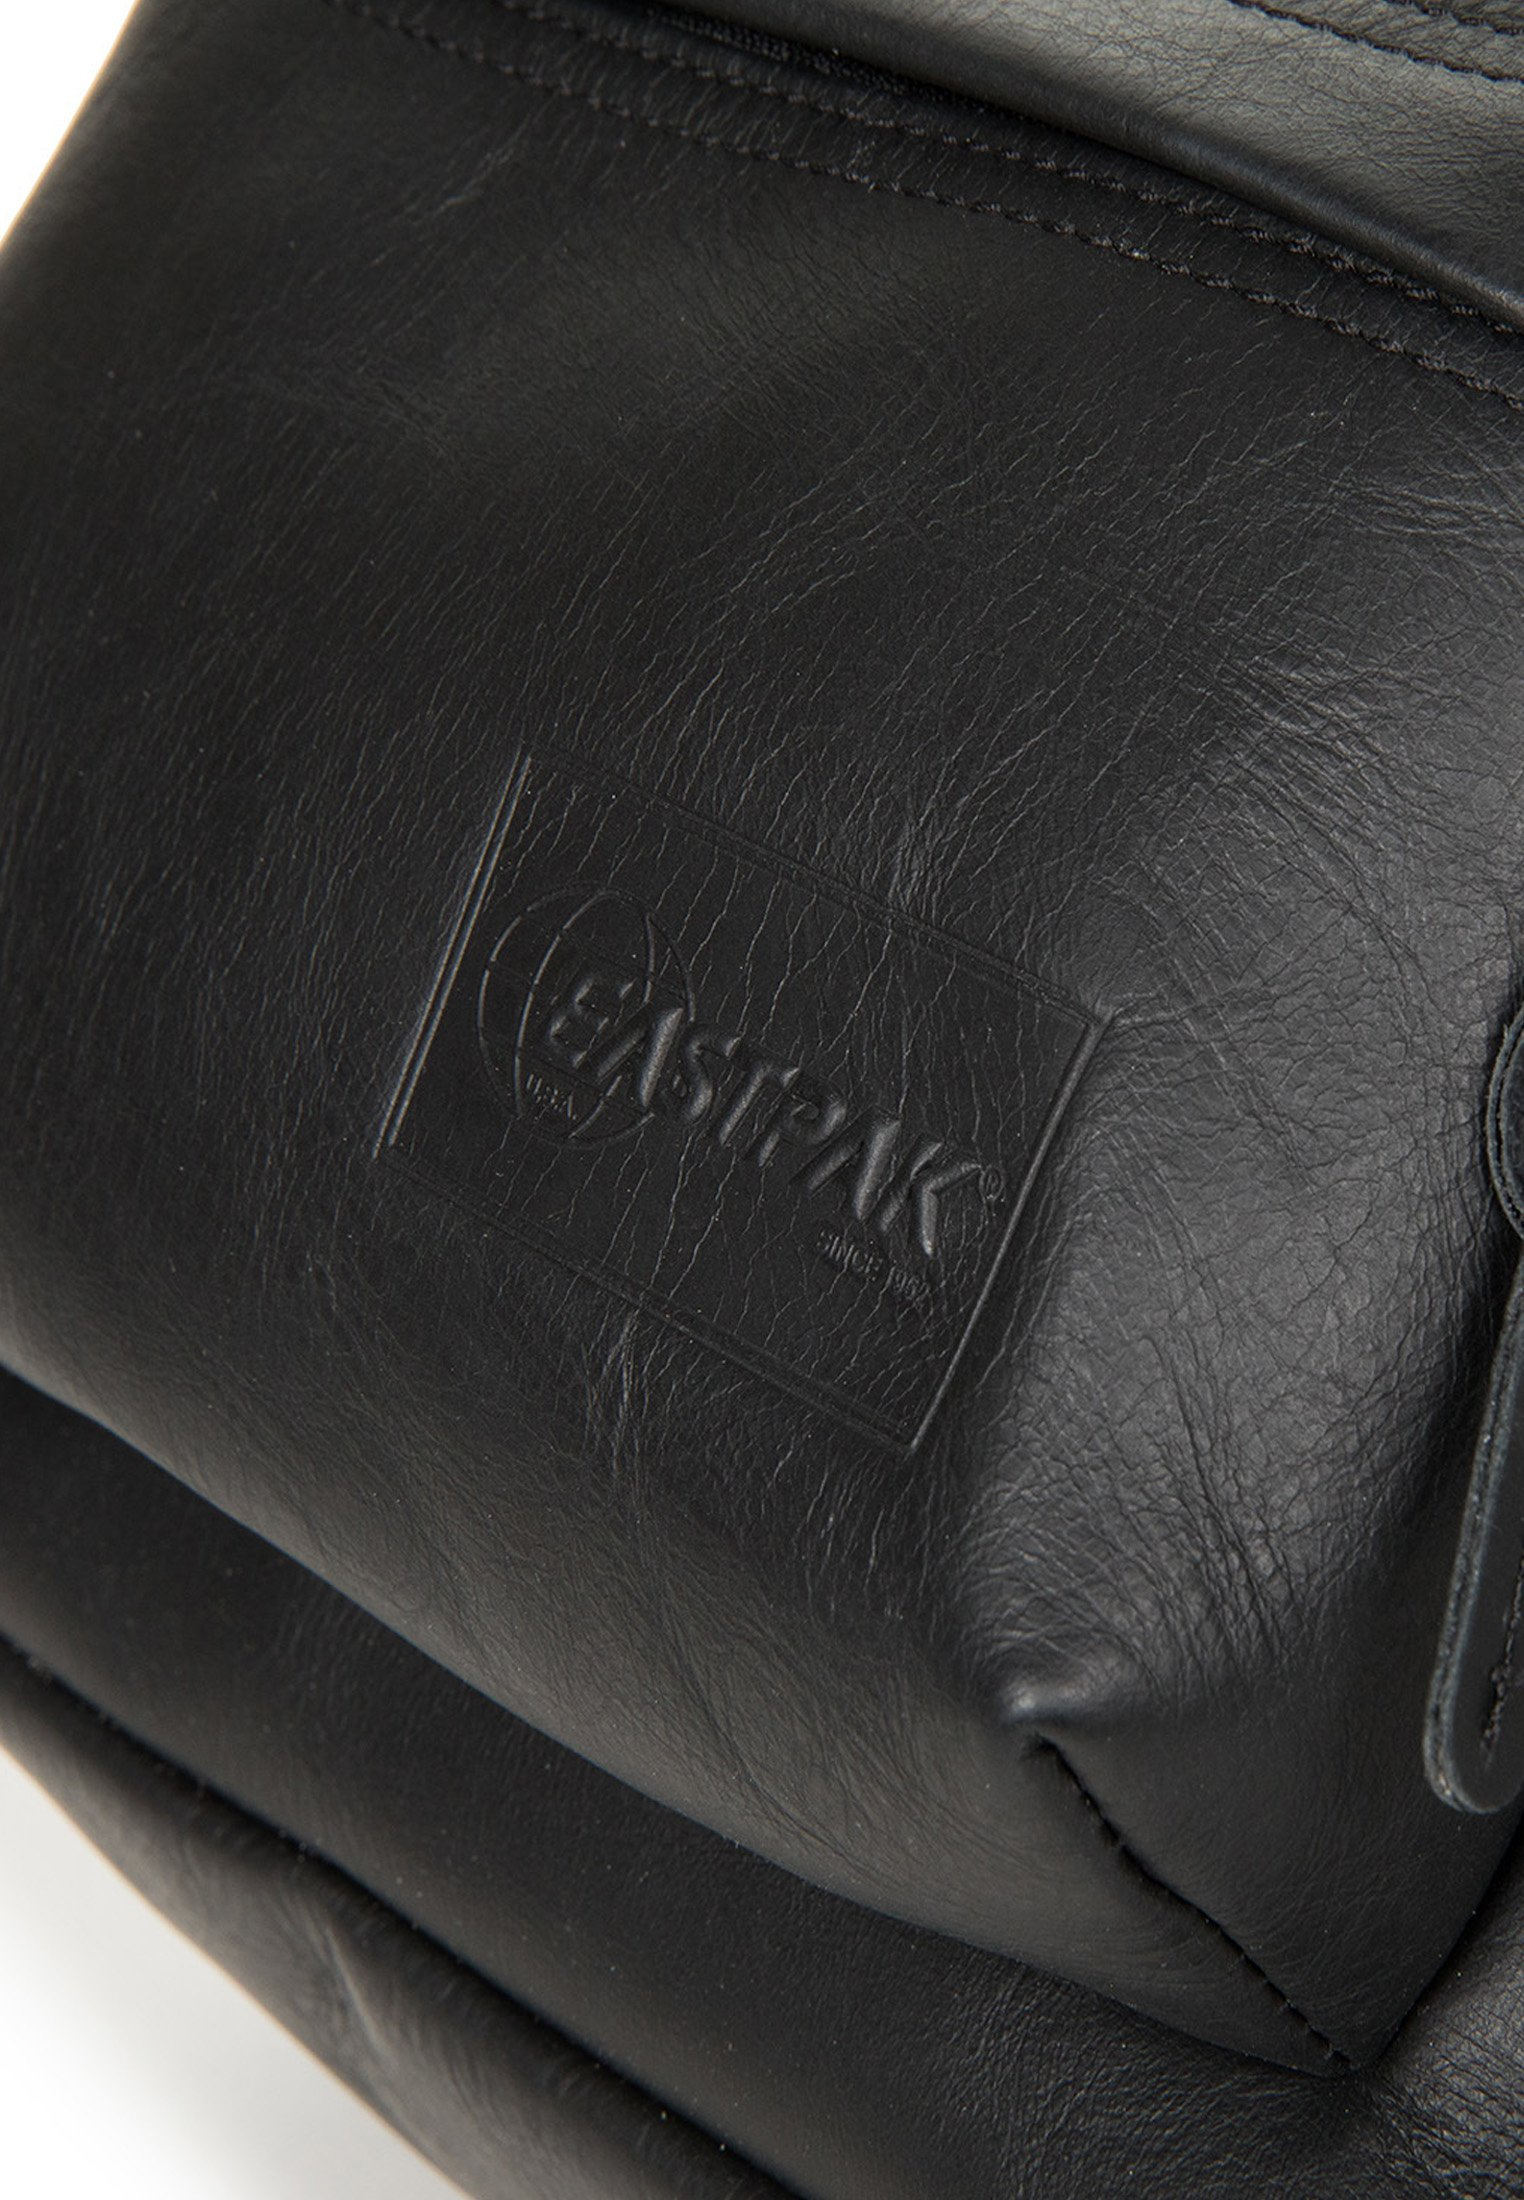 Eastpak LEATHER / TRIBUTE - Tagesrucksack - black/anthrazit - Herrentaschen YjoV0